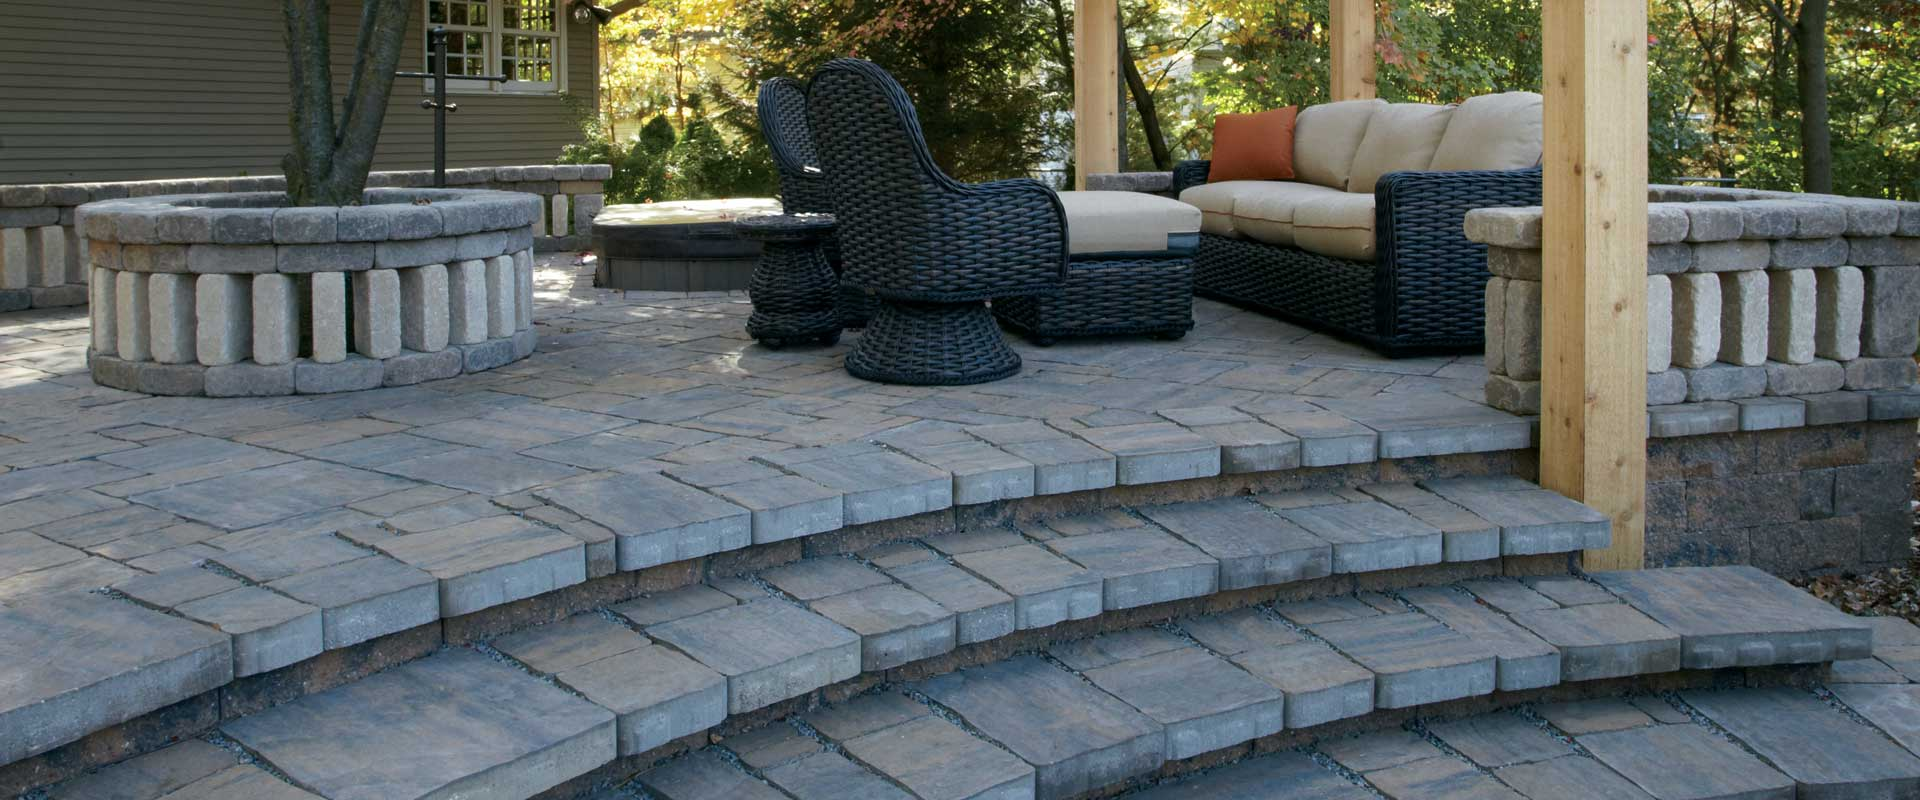 Grand Lifestyle Pavers And Lifestyle Pavers